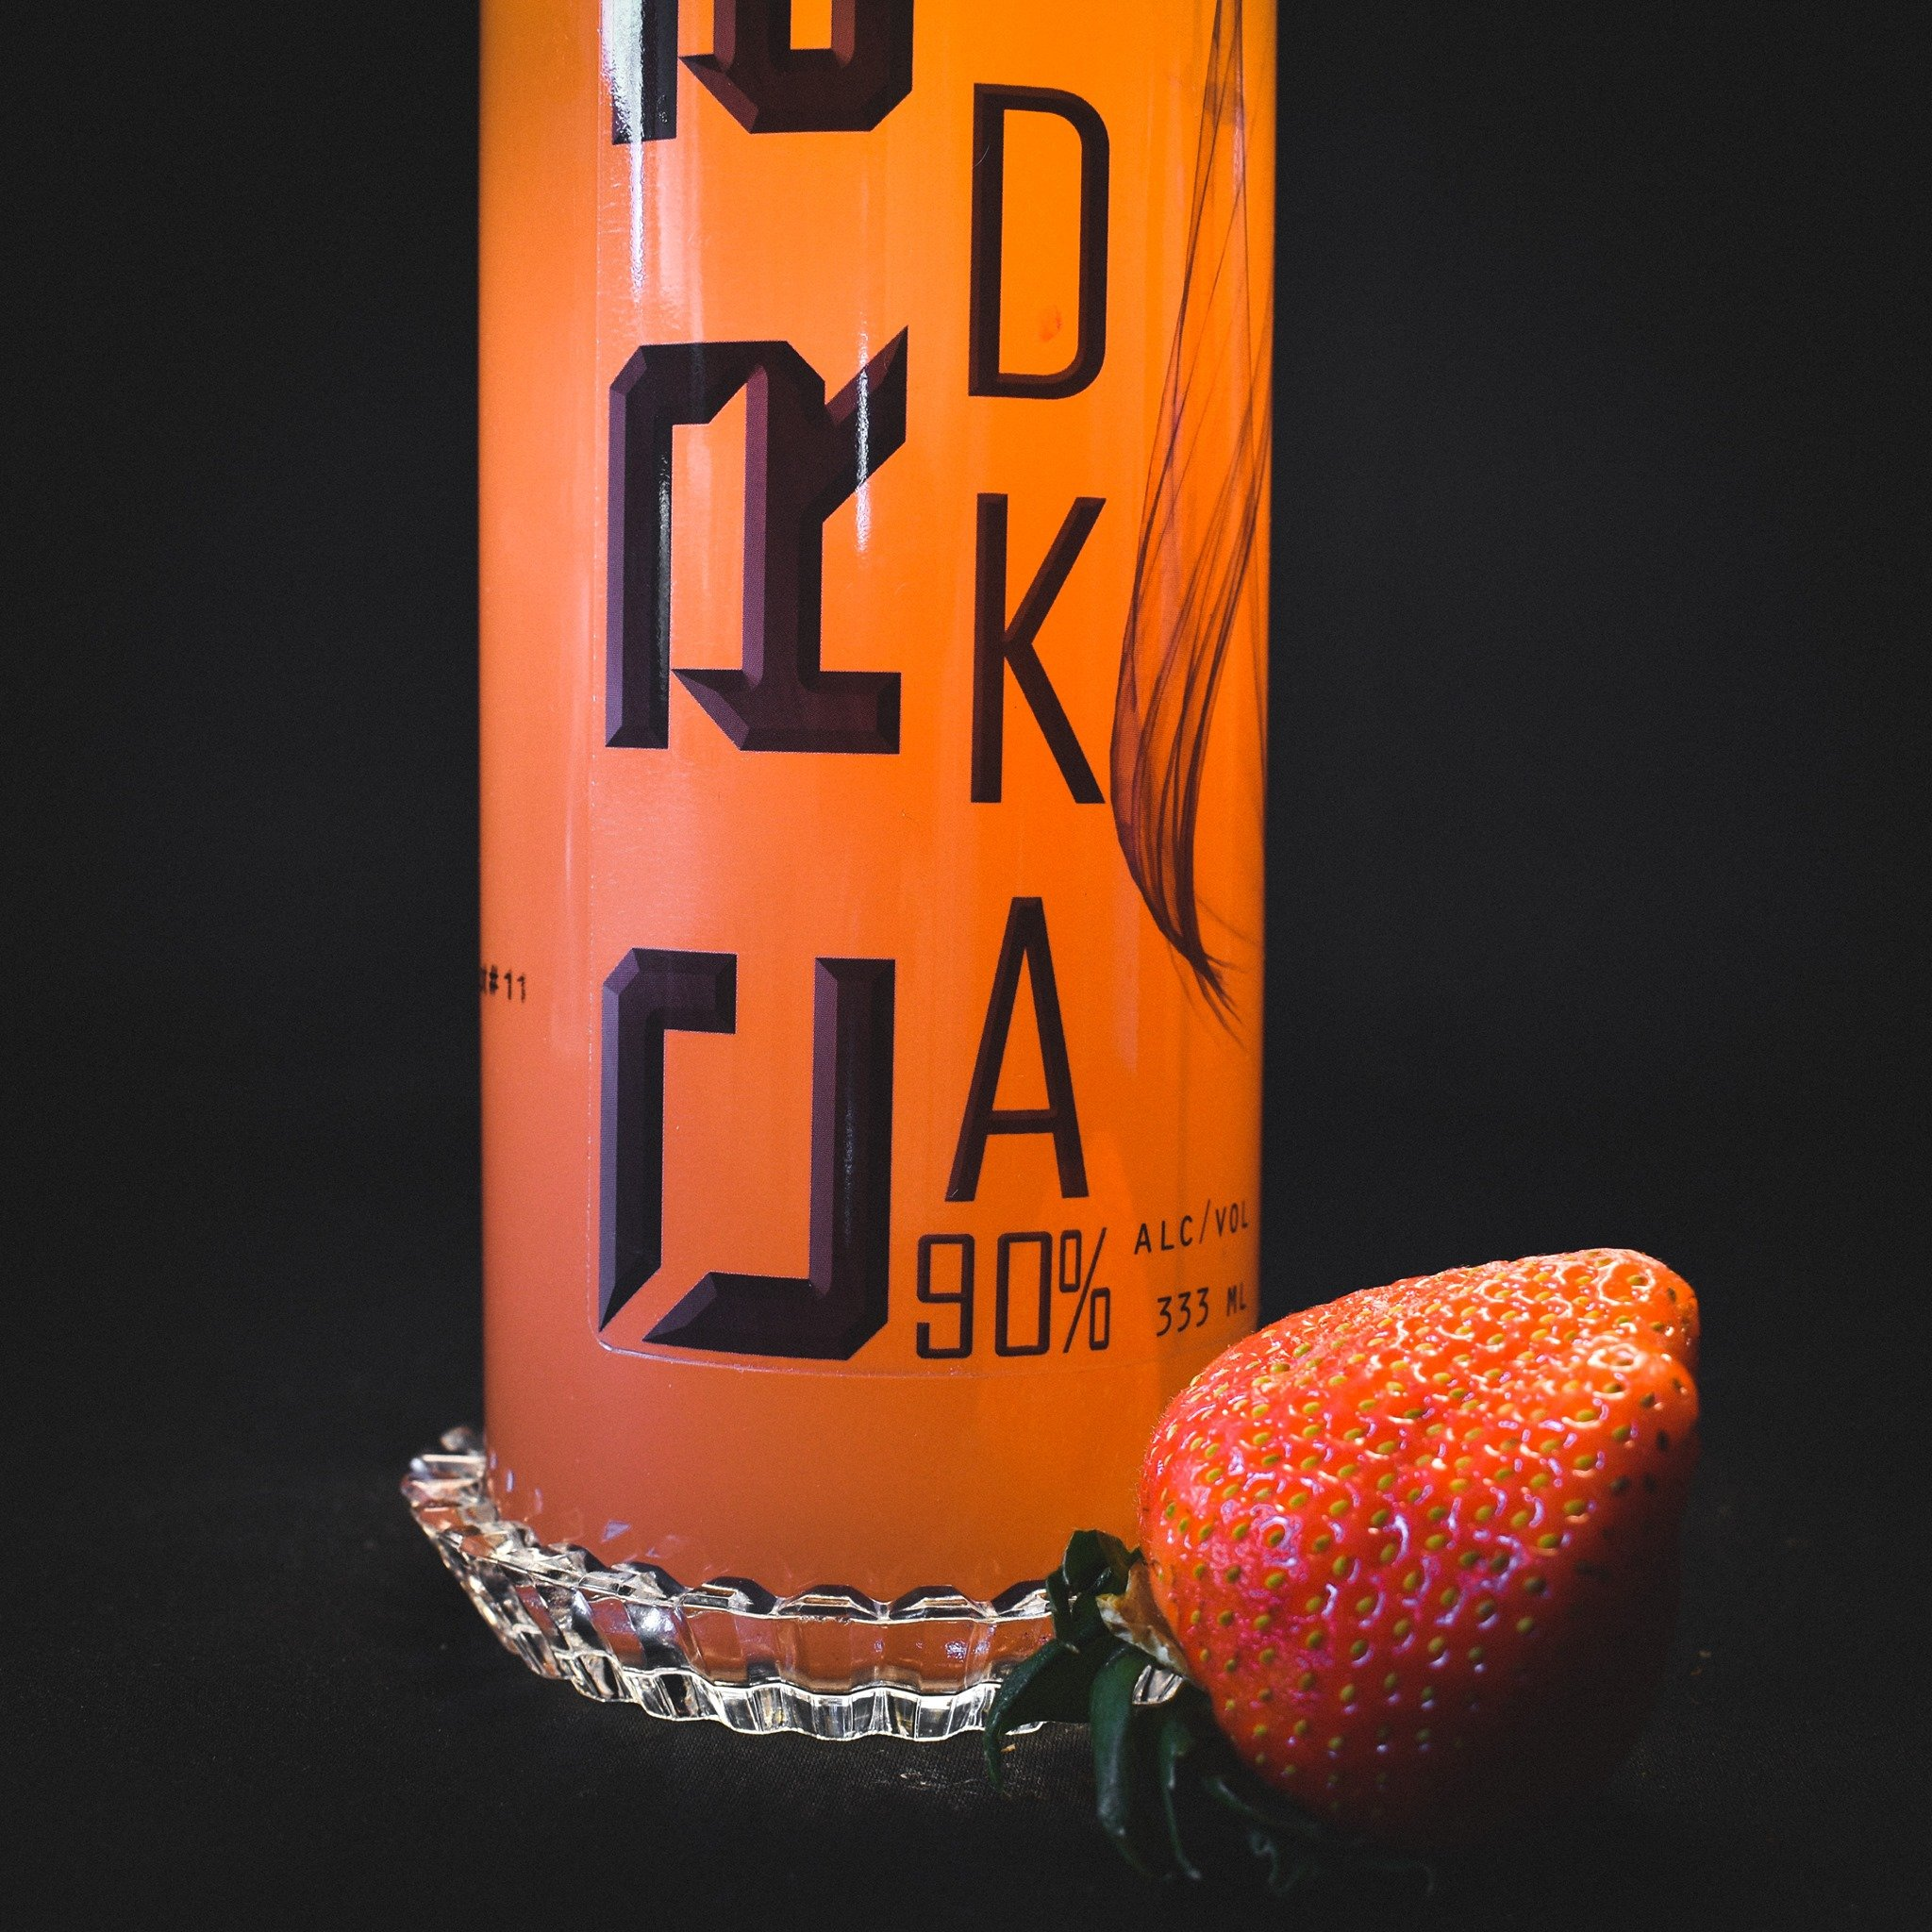 Spiced Strawberry Cre8 Eco Vodka CRE8ion